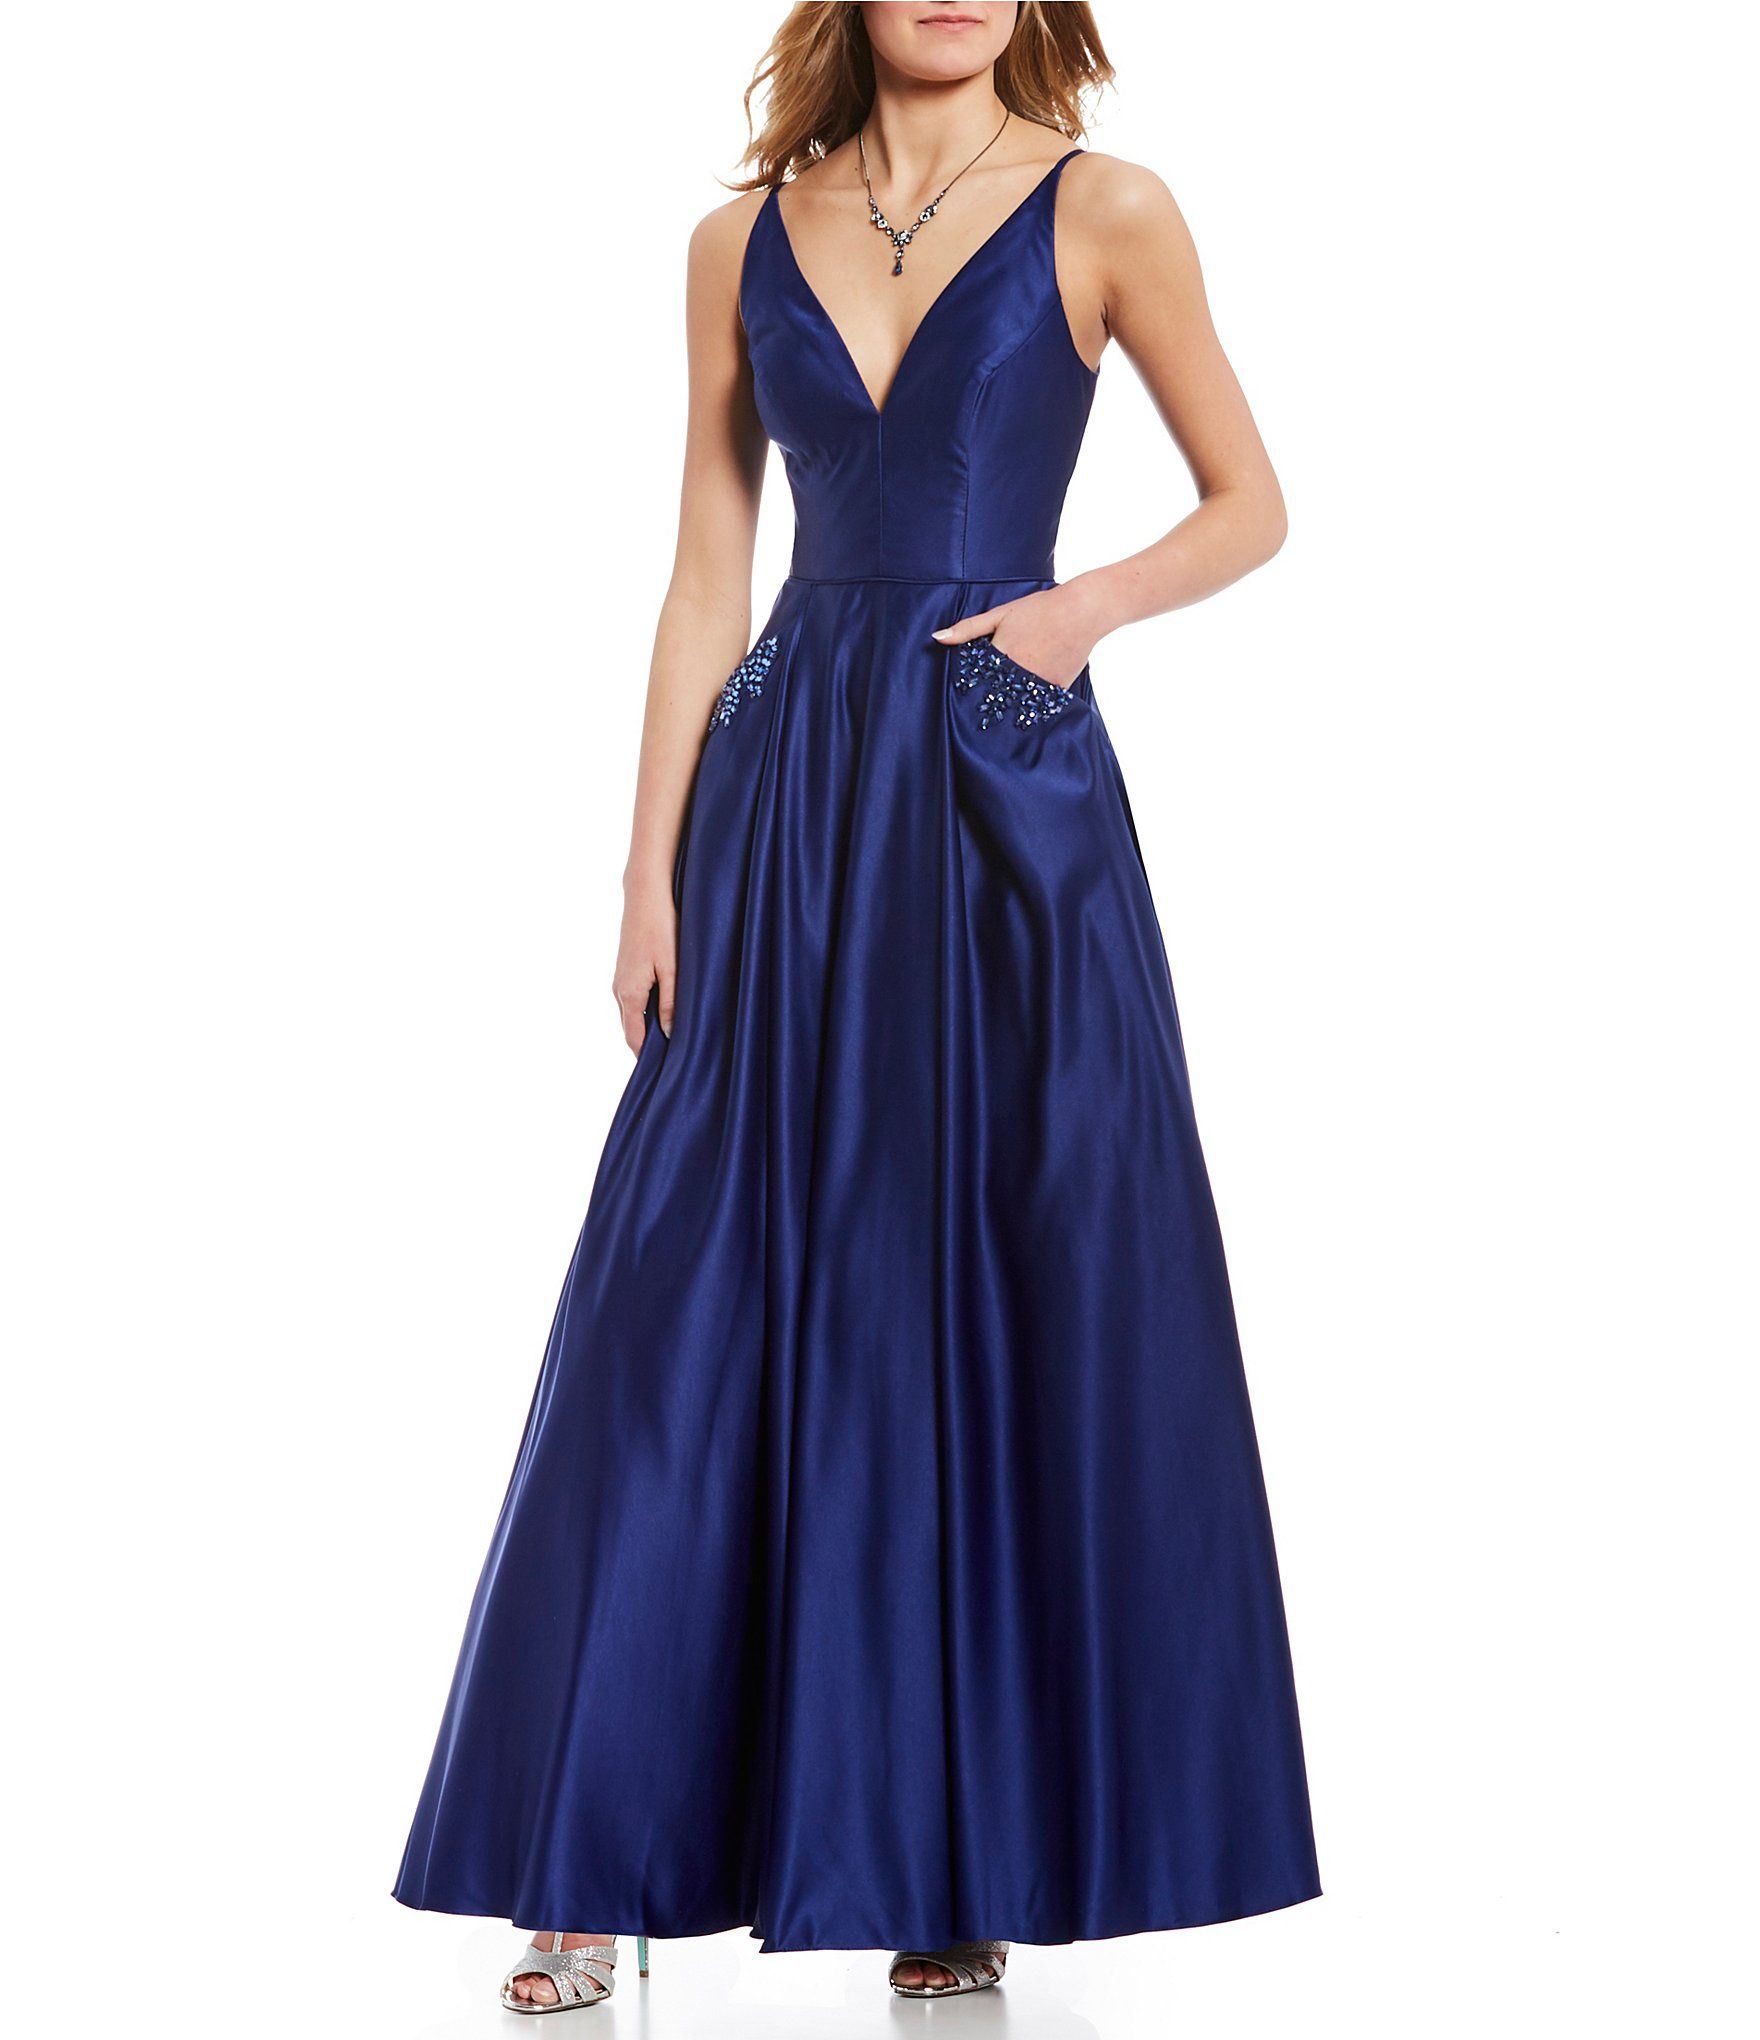 8598c780972 Shop for Blondie Nites V-Neck Jeweled-Pocket Ball Gown at Dillards.com.  Visit Dillards.com to find clothing